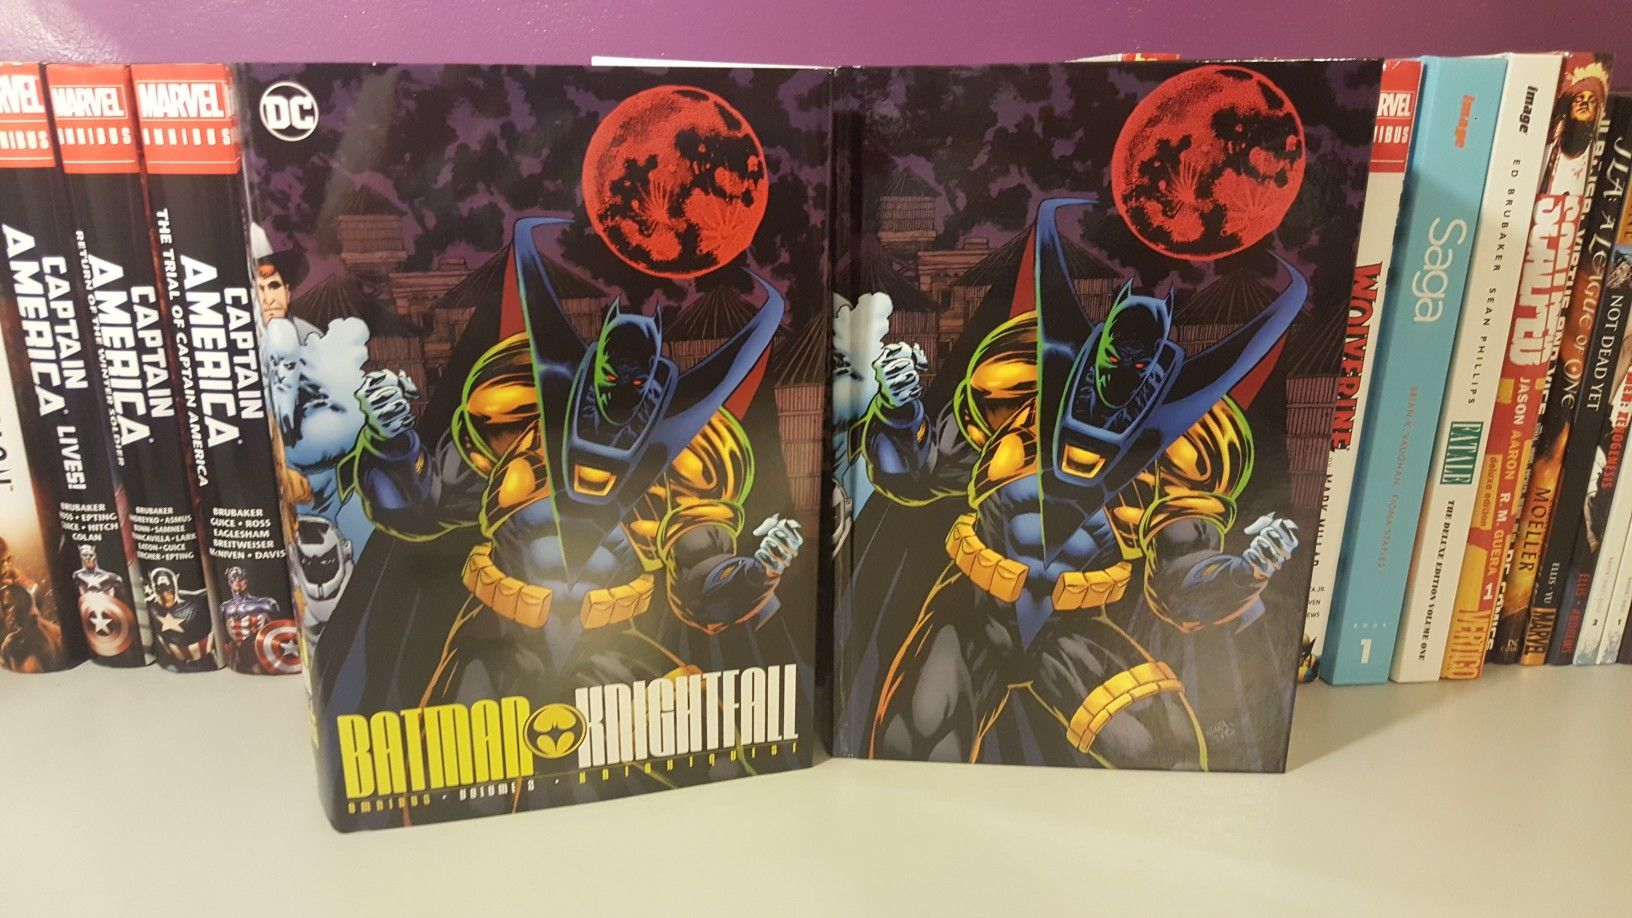 Batman Knightfall Omnibus Vol 2 Overview Video Https M Youtube Com Watch V Wqf8xxyfc1q Batman Batmankn Comic Book Collection Comic Collection Deathstroke